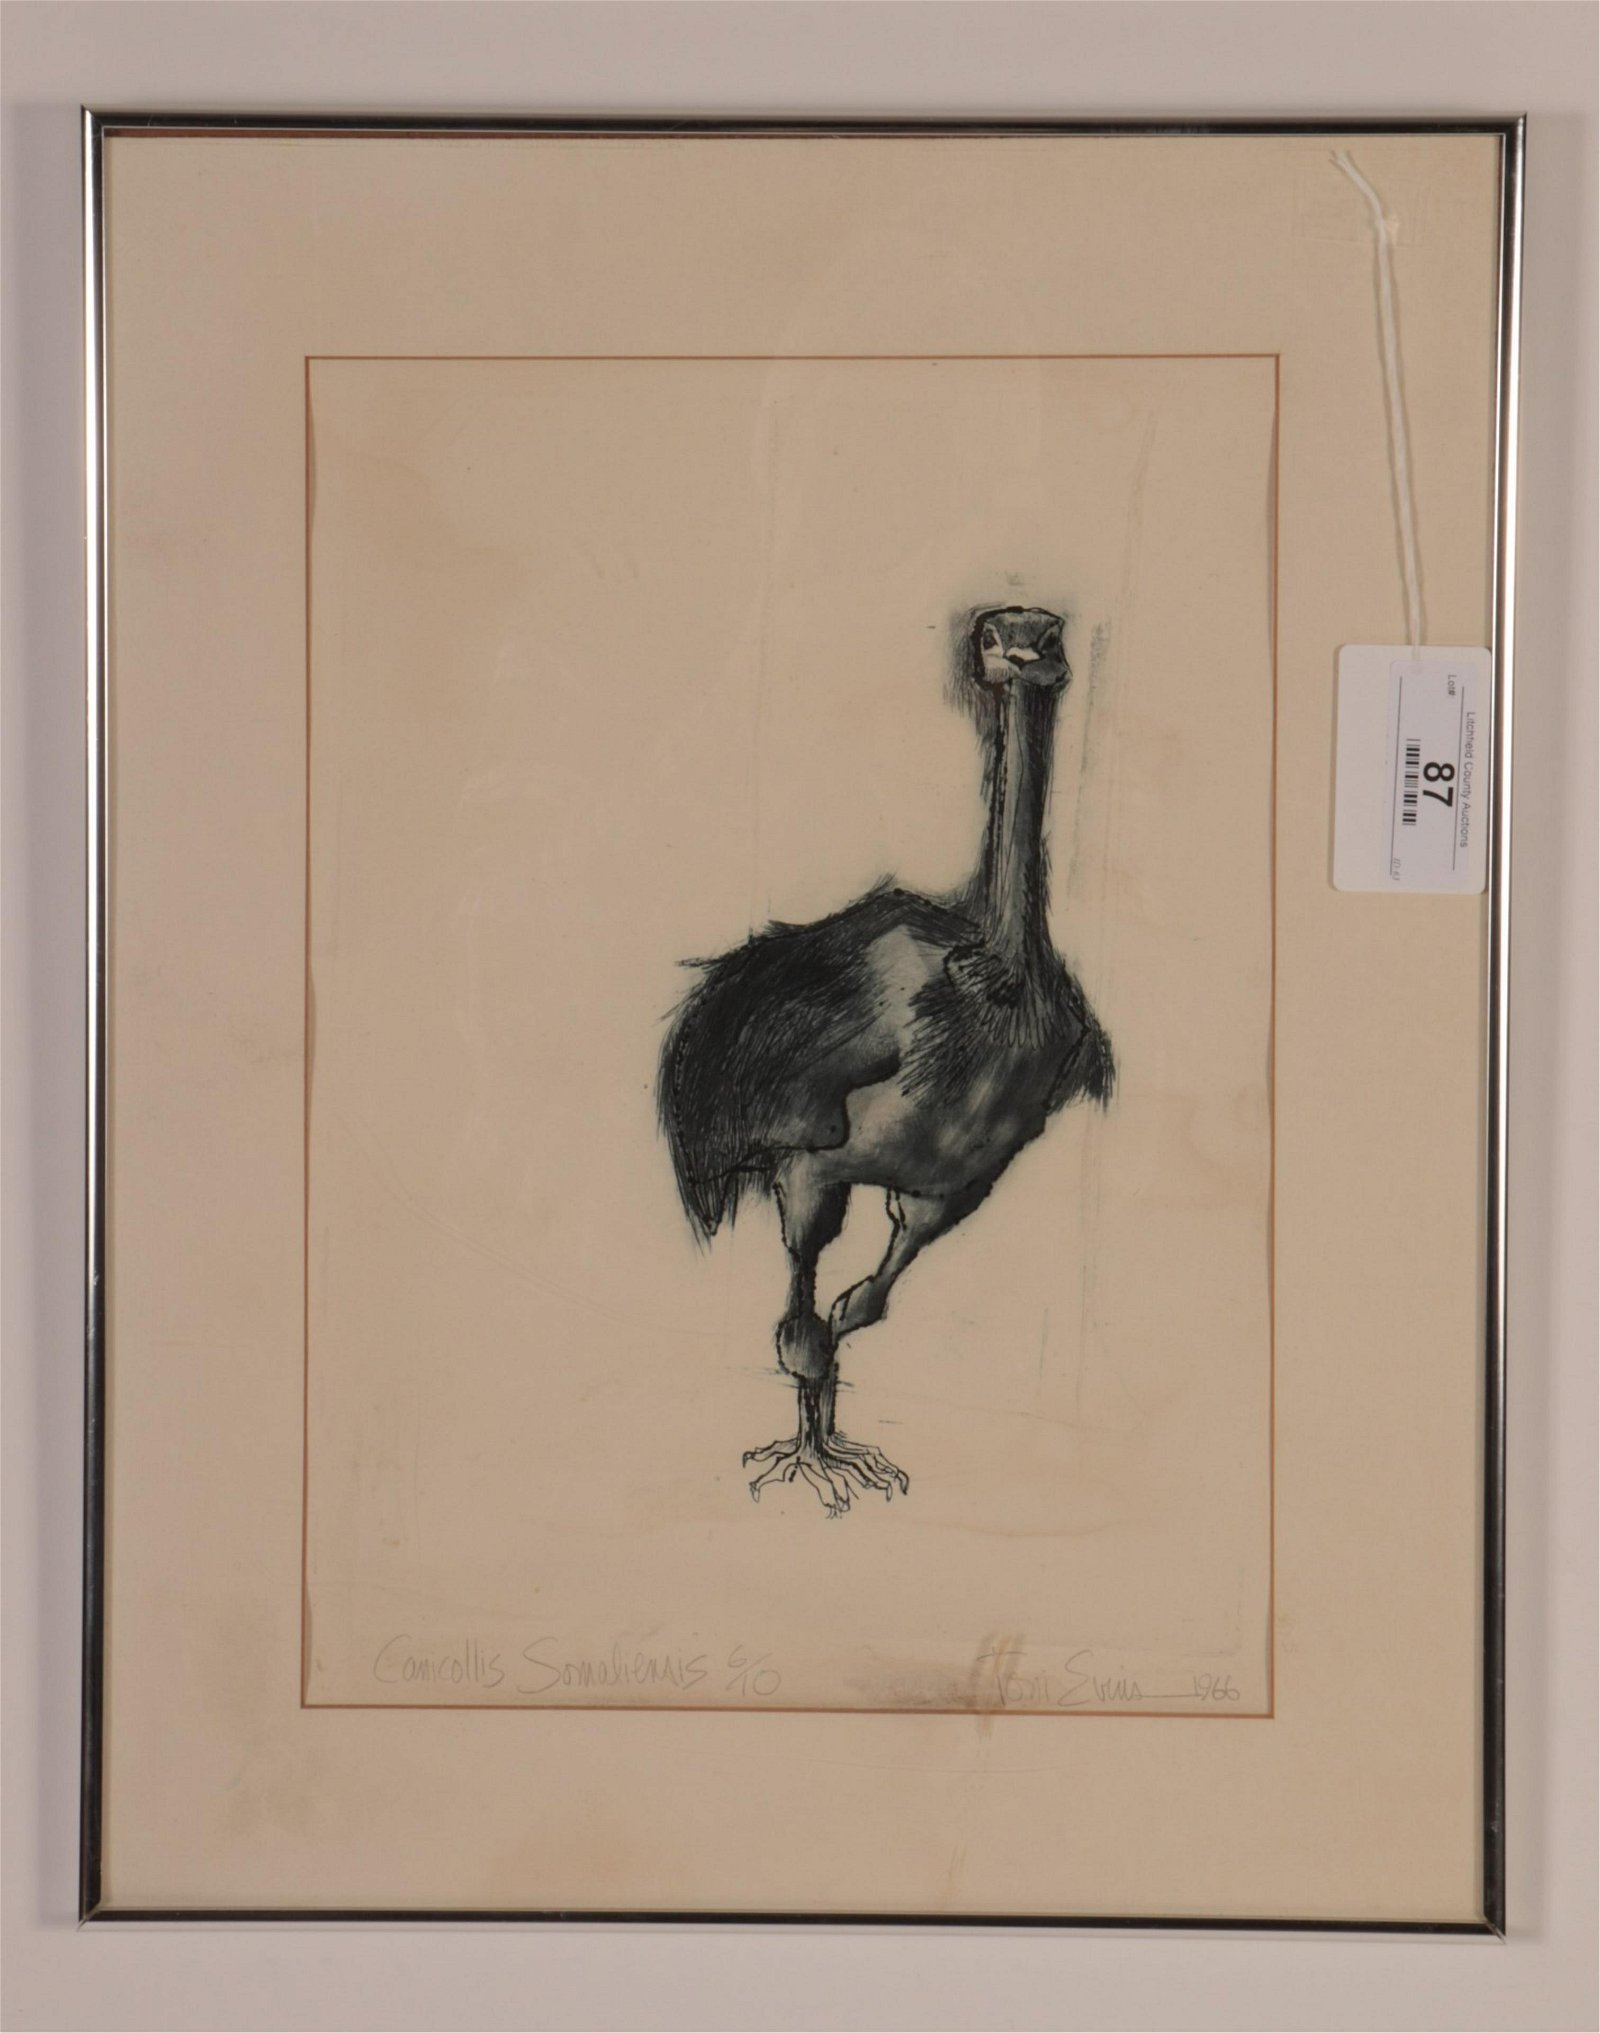 Toni Evins, Mid 20th C., Bird lithograph